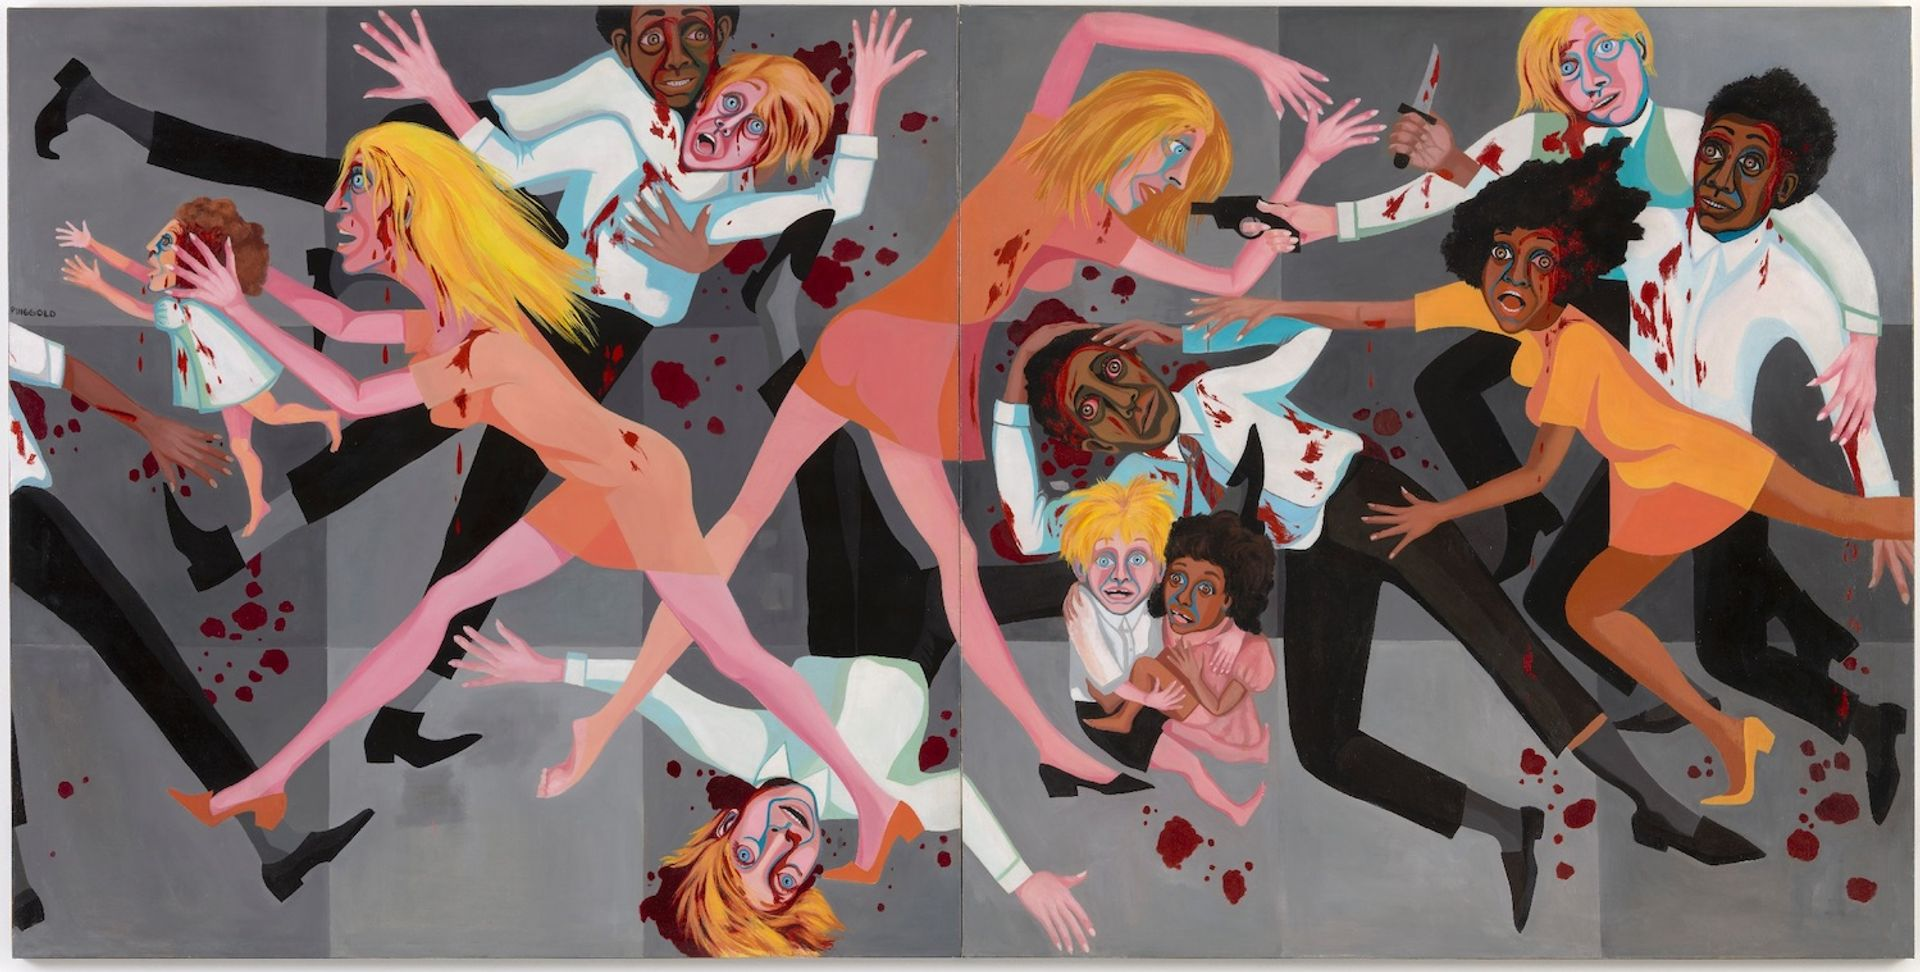 Faith Ringgold, American People Series #20: Die (1967) © Faith Ringgold / ARS, NY and DACS, London, courtesy ACA Galleries, New York 2021. Digital Image © The Museum of Modern Art/Licensed by SCALA / Art Resource, NY